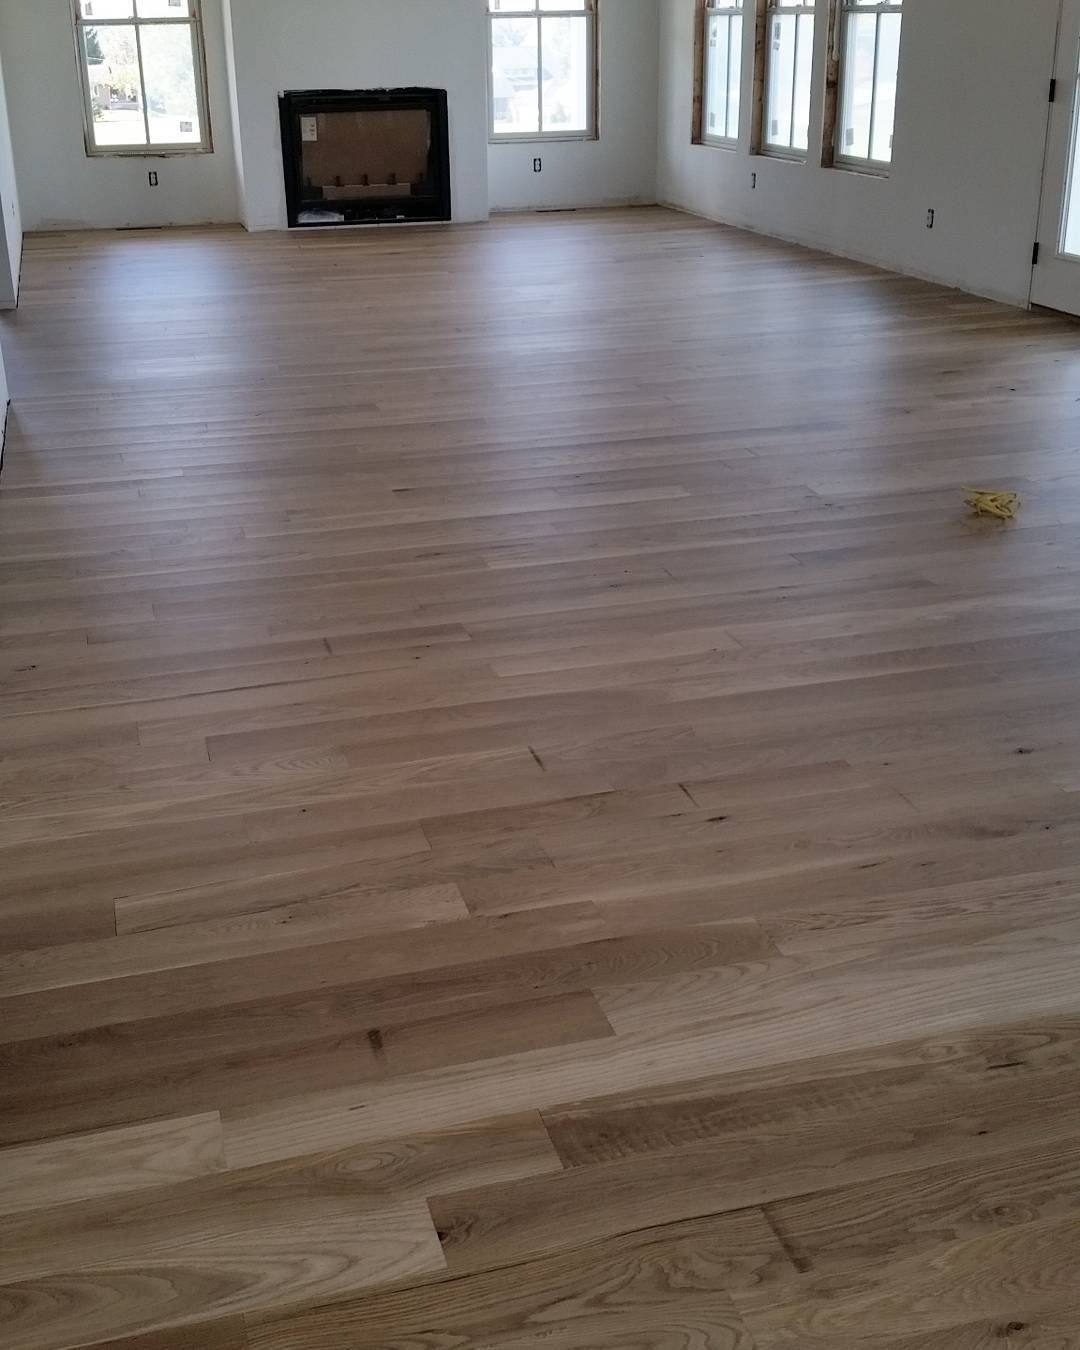 White Oak Floors Sanded Sealed 3x Matte Top Coat Bona Finish